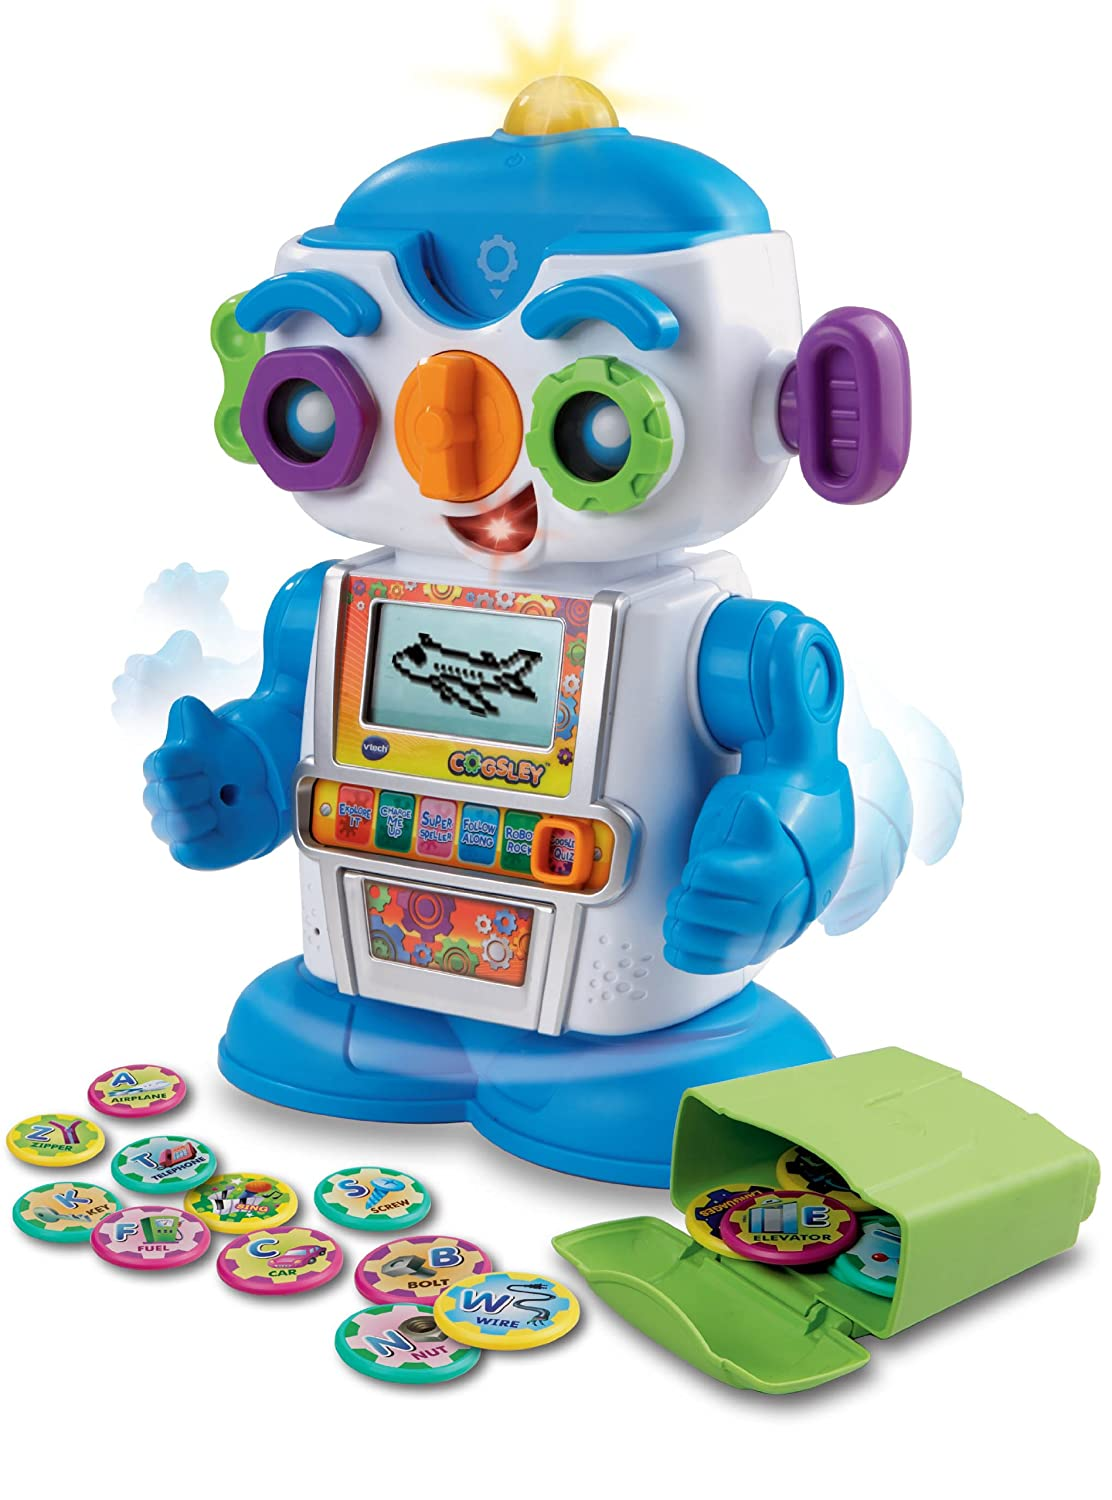 Electronic Learning Toys For Toddlers : Great educational toys for toddlers from vtech